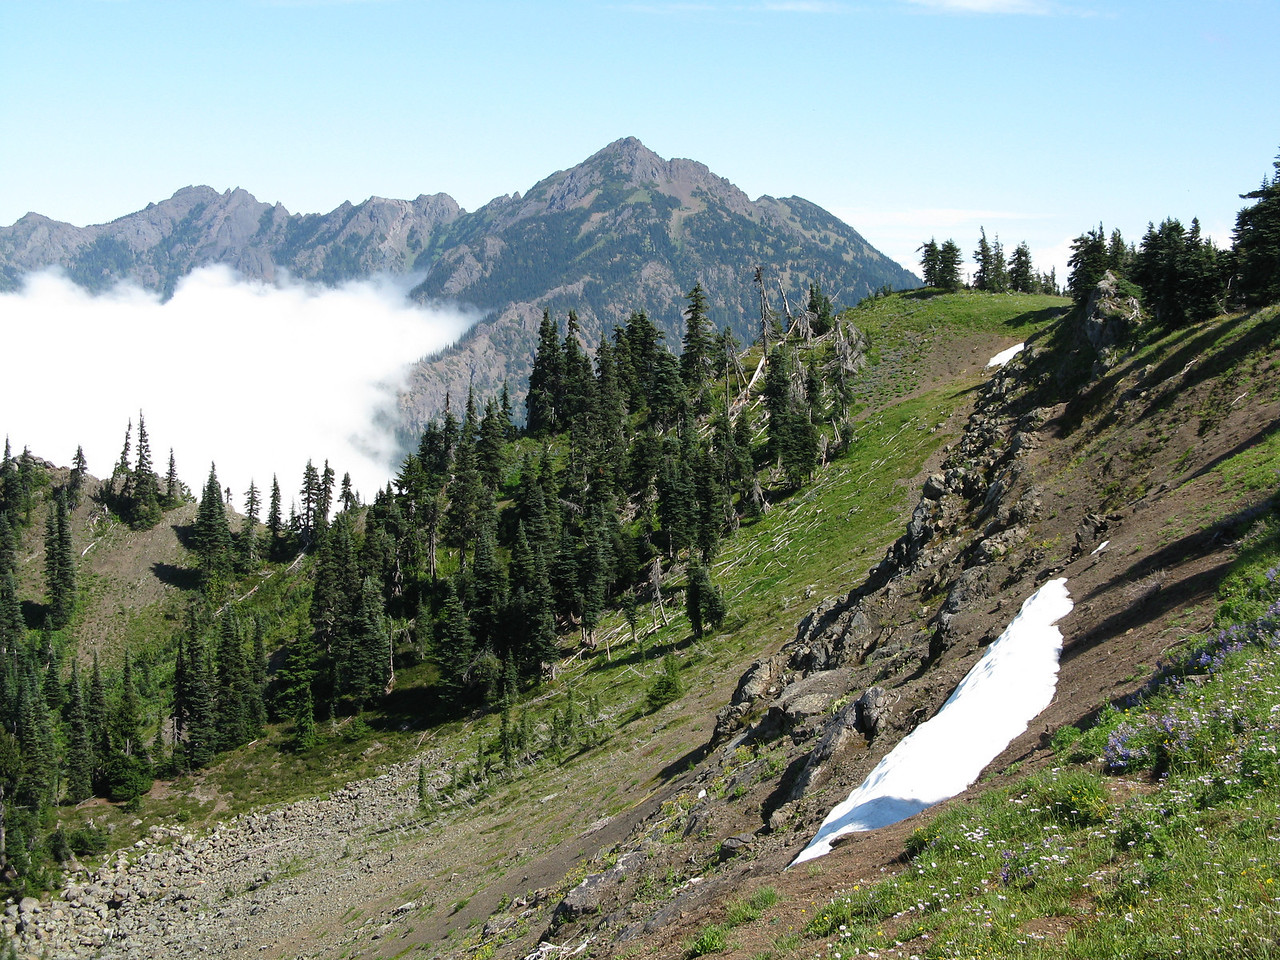 Looking east from the top.  Mount Angeles, 6454 feet, in the distance.